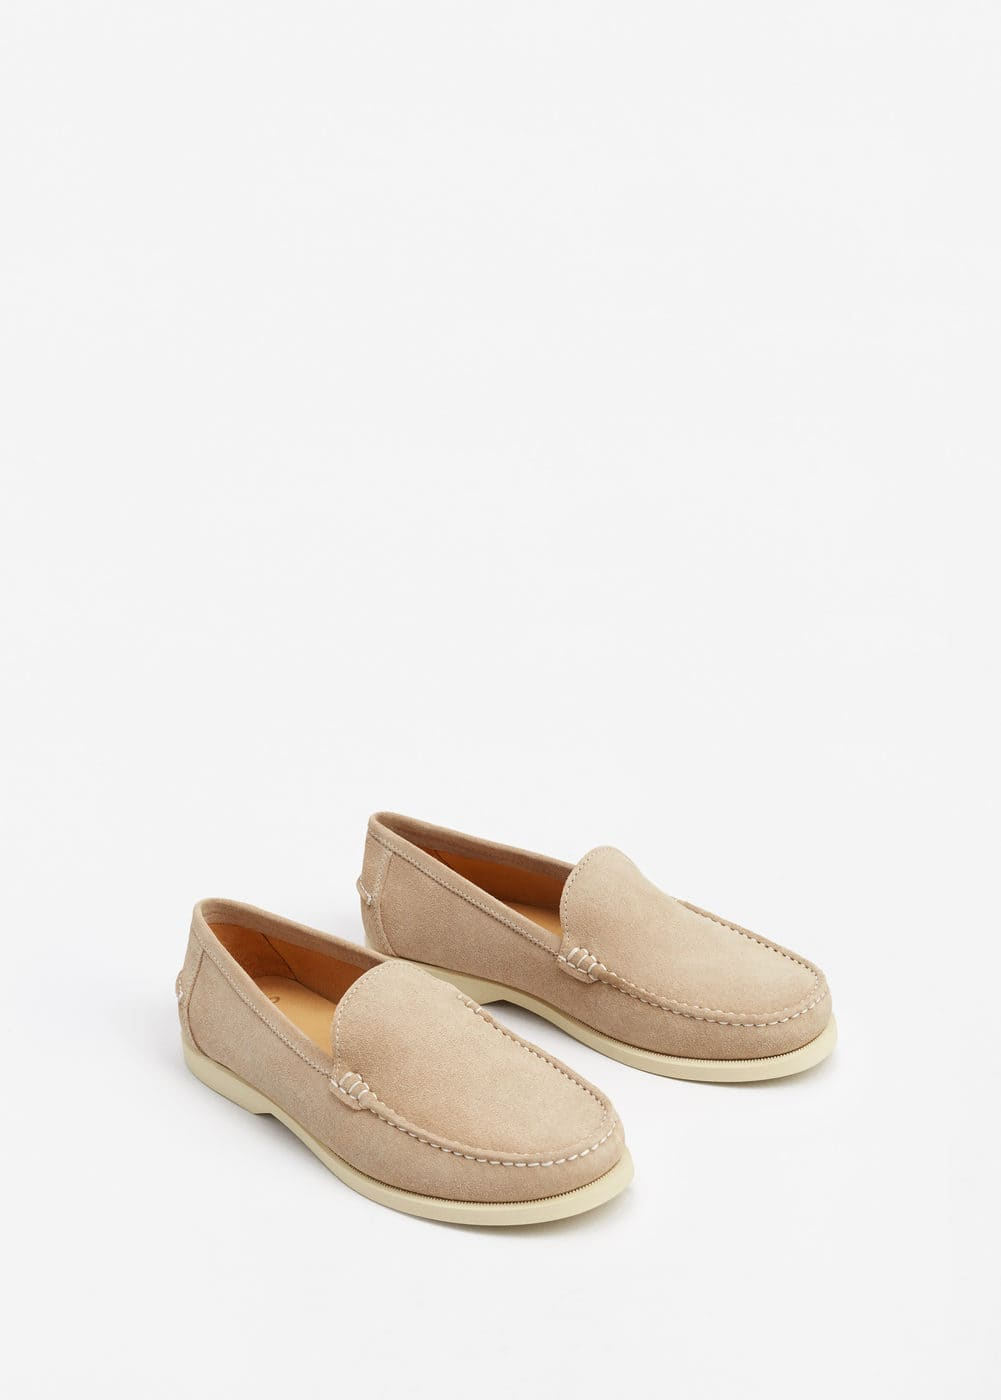 Mocassins serratge | MANGO MAN